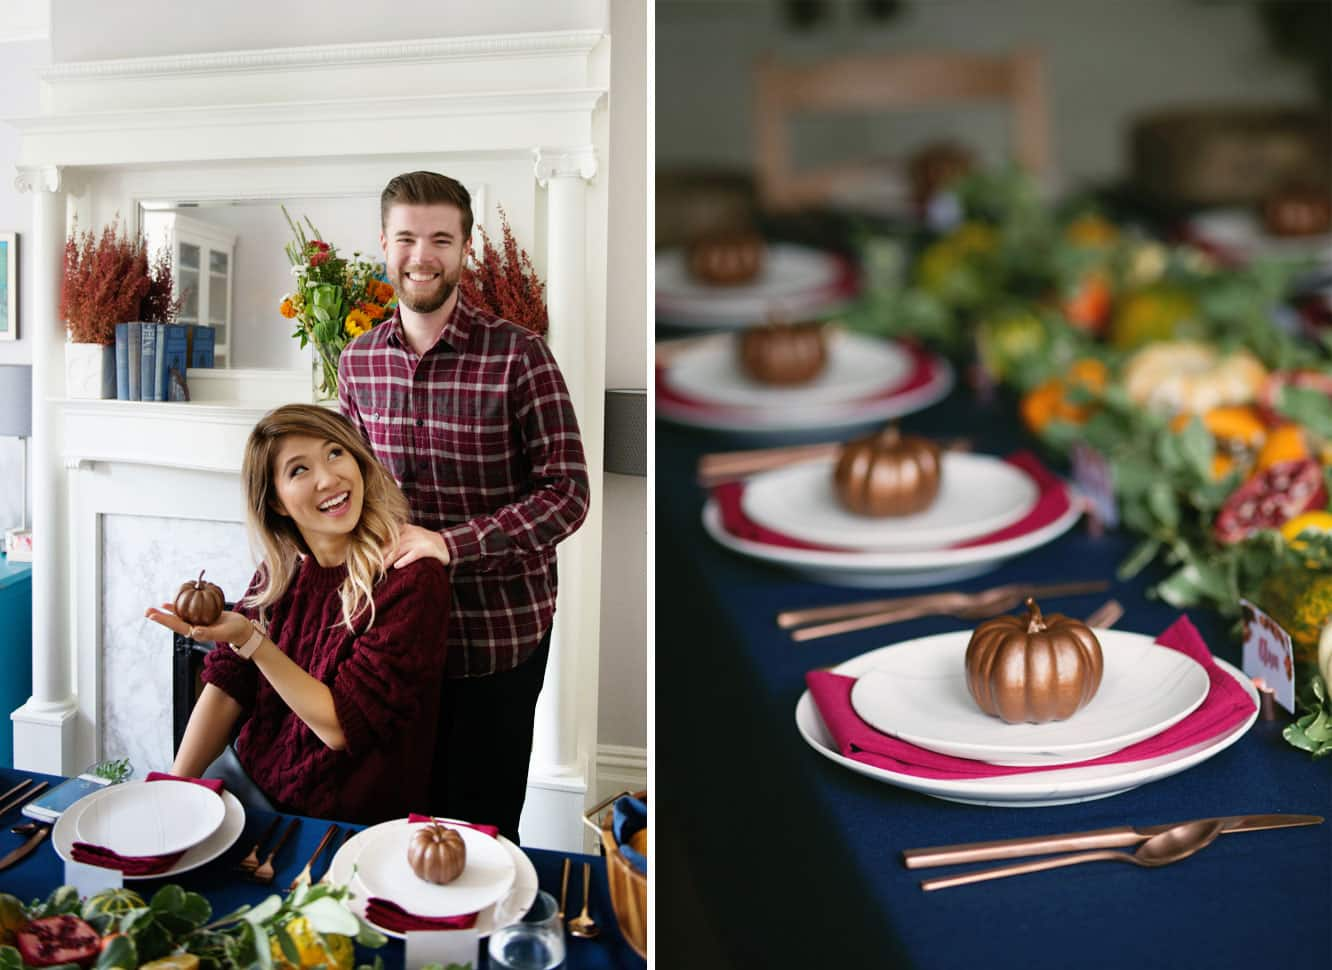 How to Host a Friendsgiving Dinner - Tips, Designs and Recipes